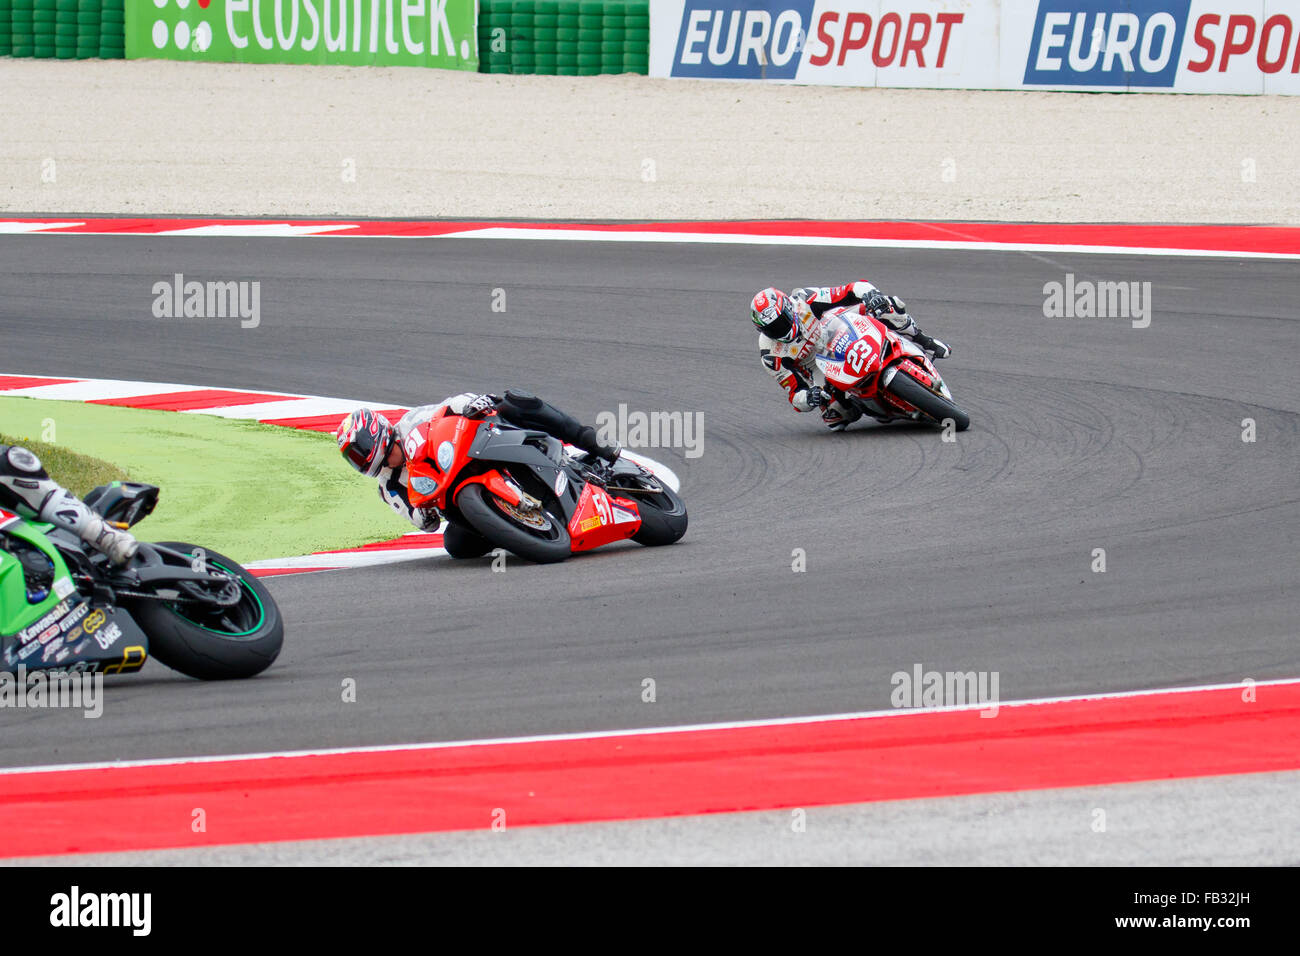 Misano Adriatico, Italy - June 20, 2015: Ducati 1199 Panigale R of Althea Racing Team, driven by SALVADORI Luca Stock Photo